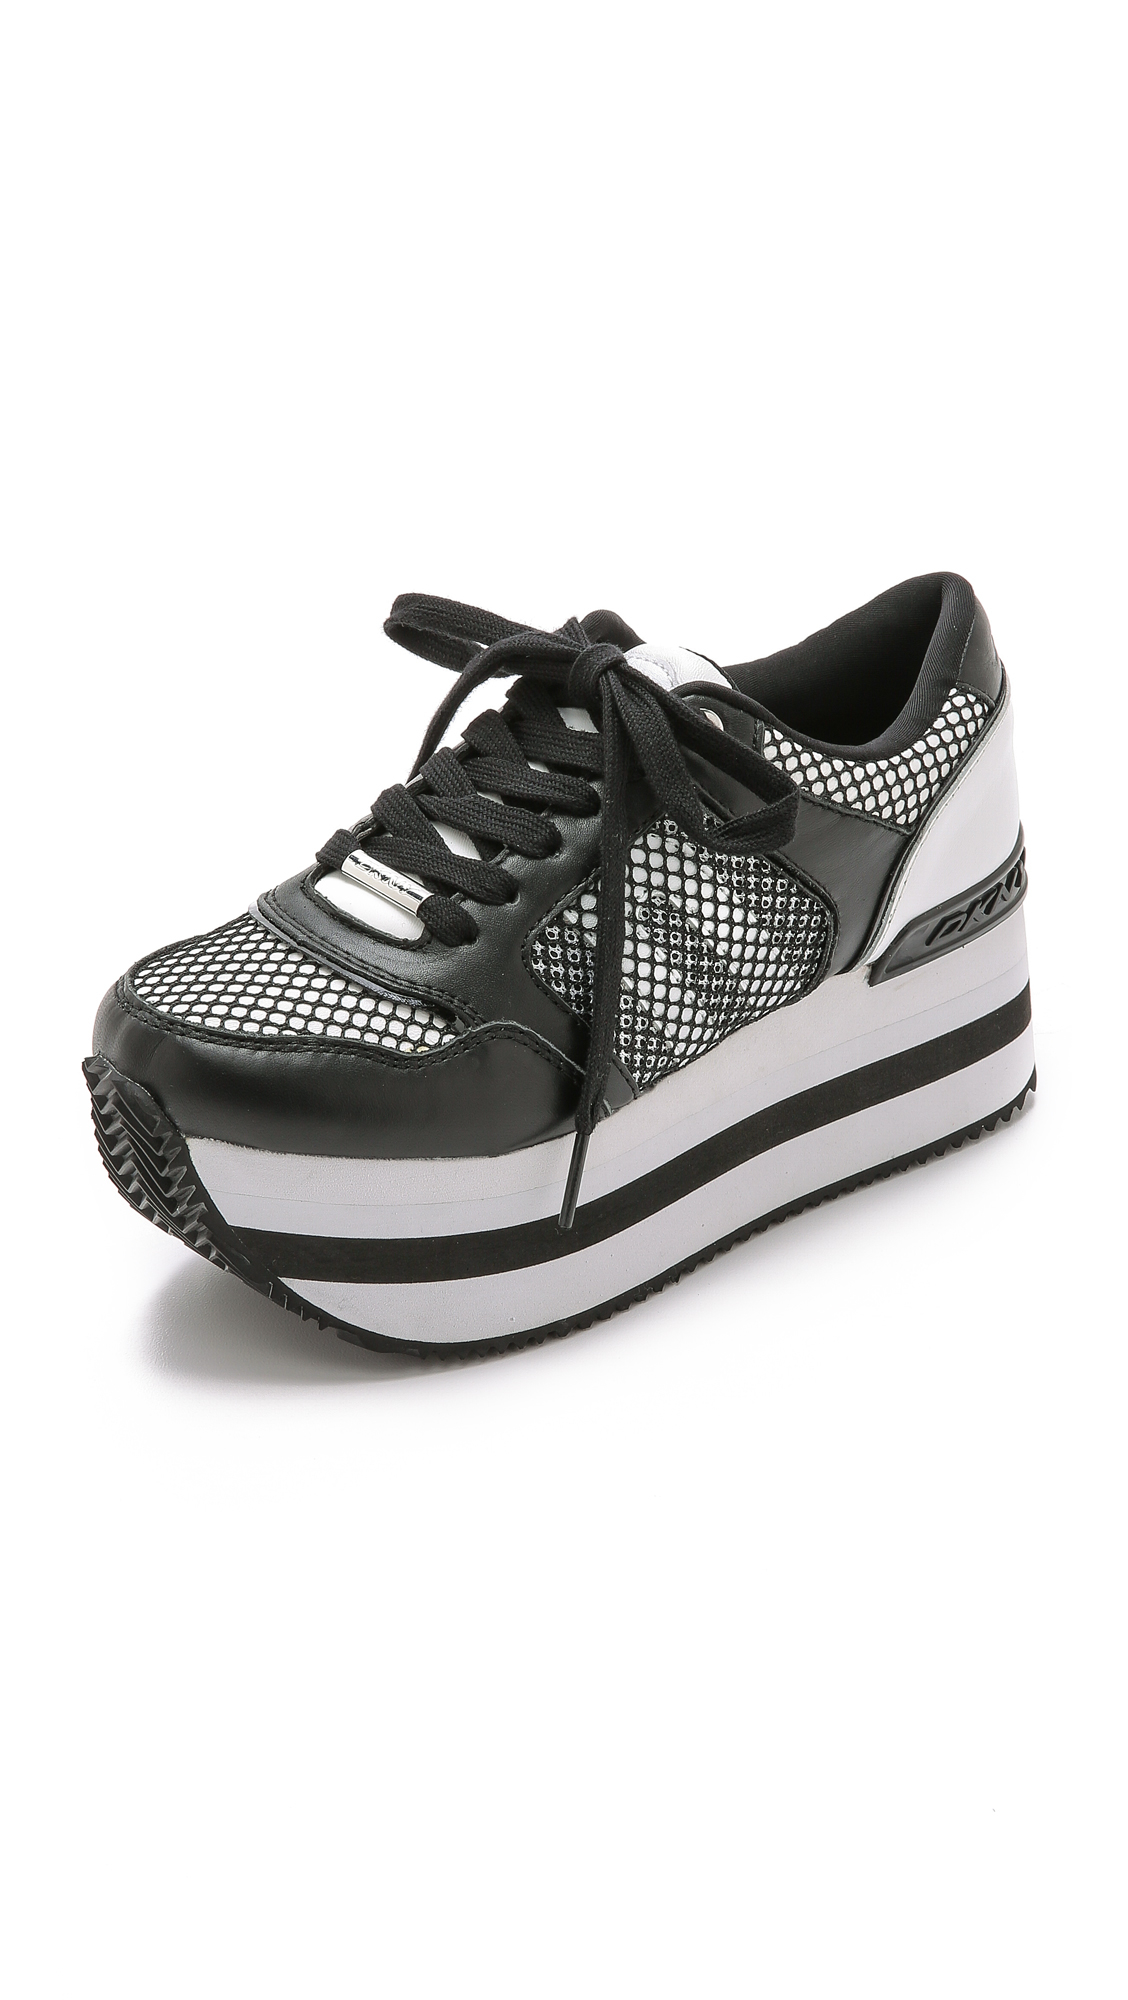 Dkny Shoes Black And White